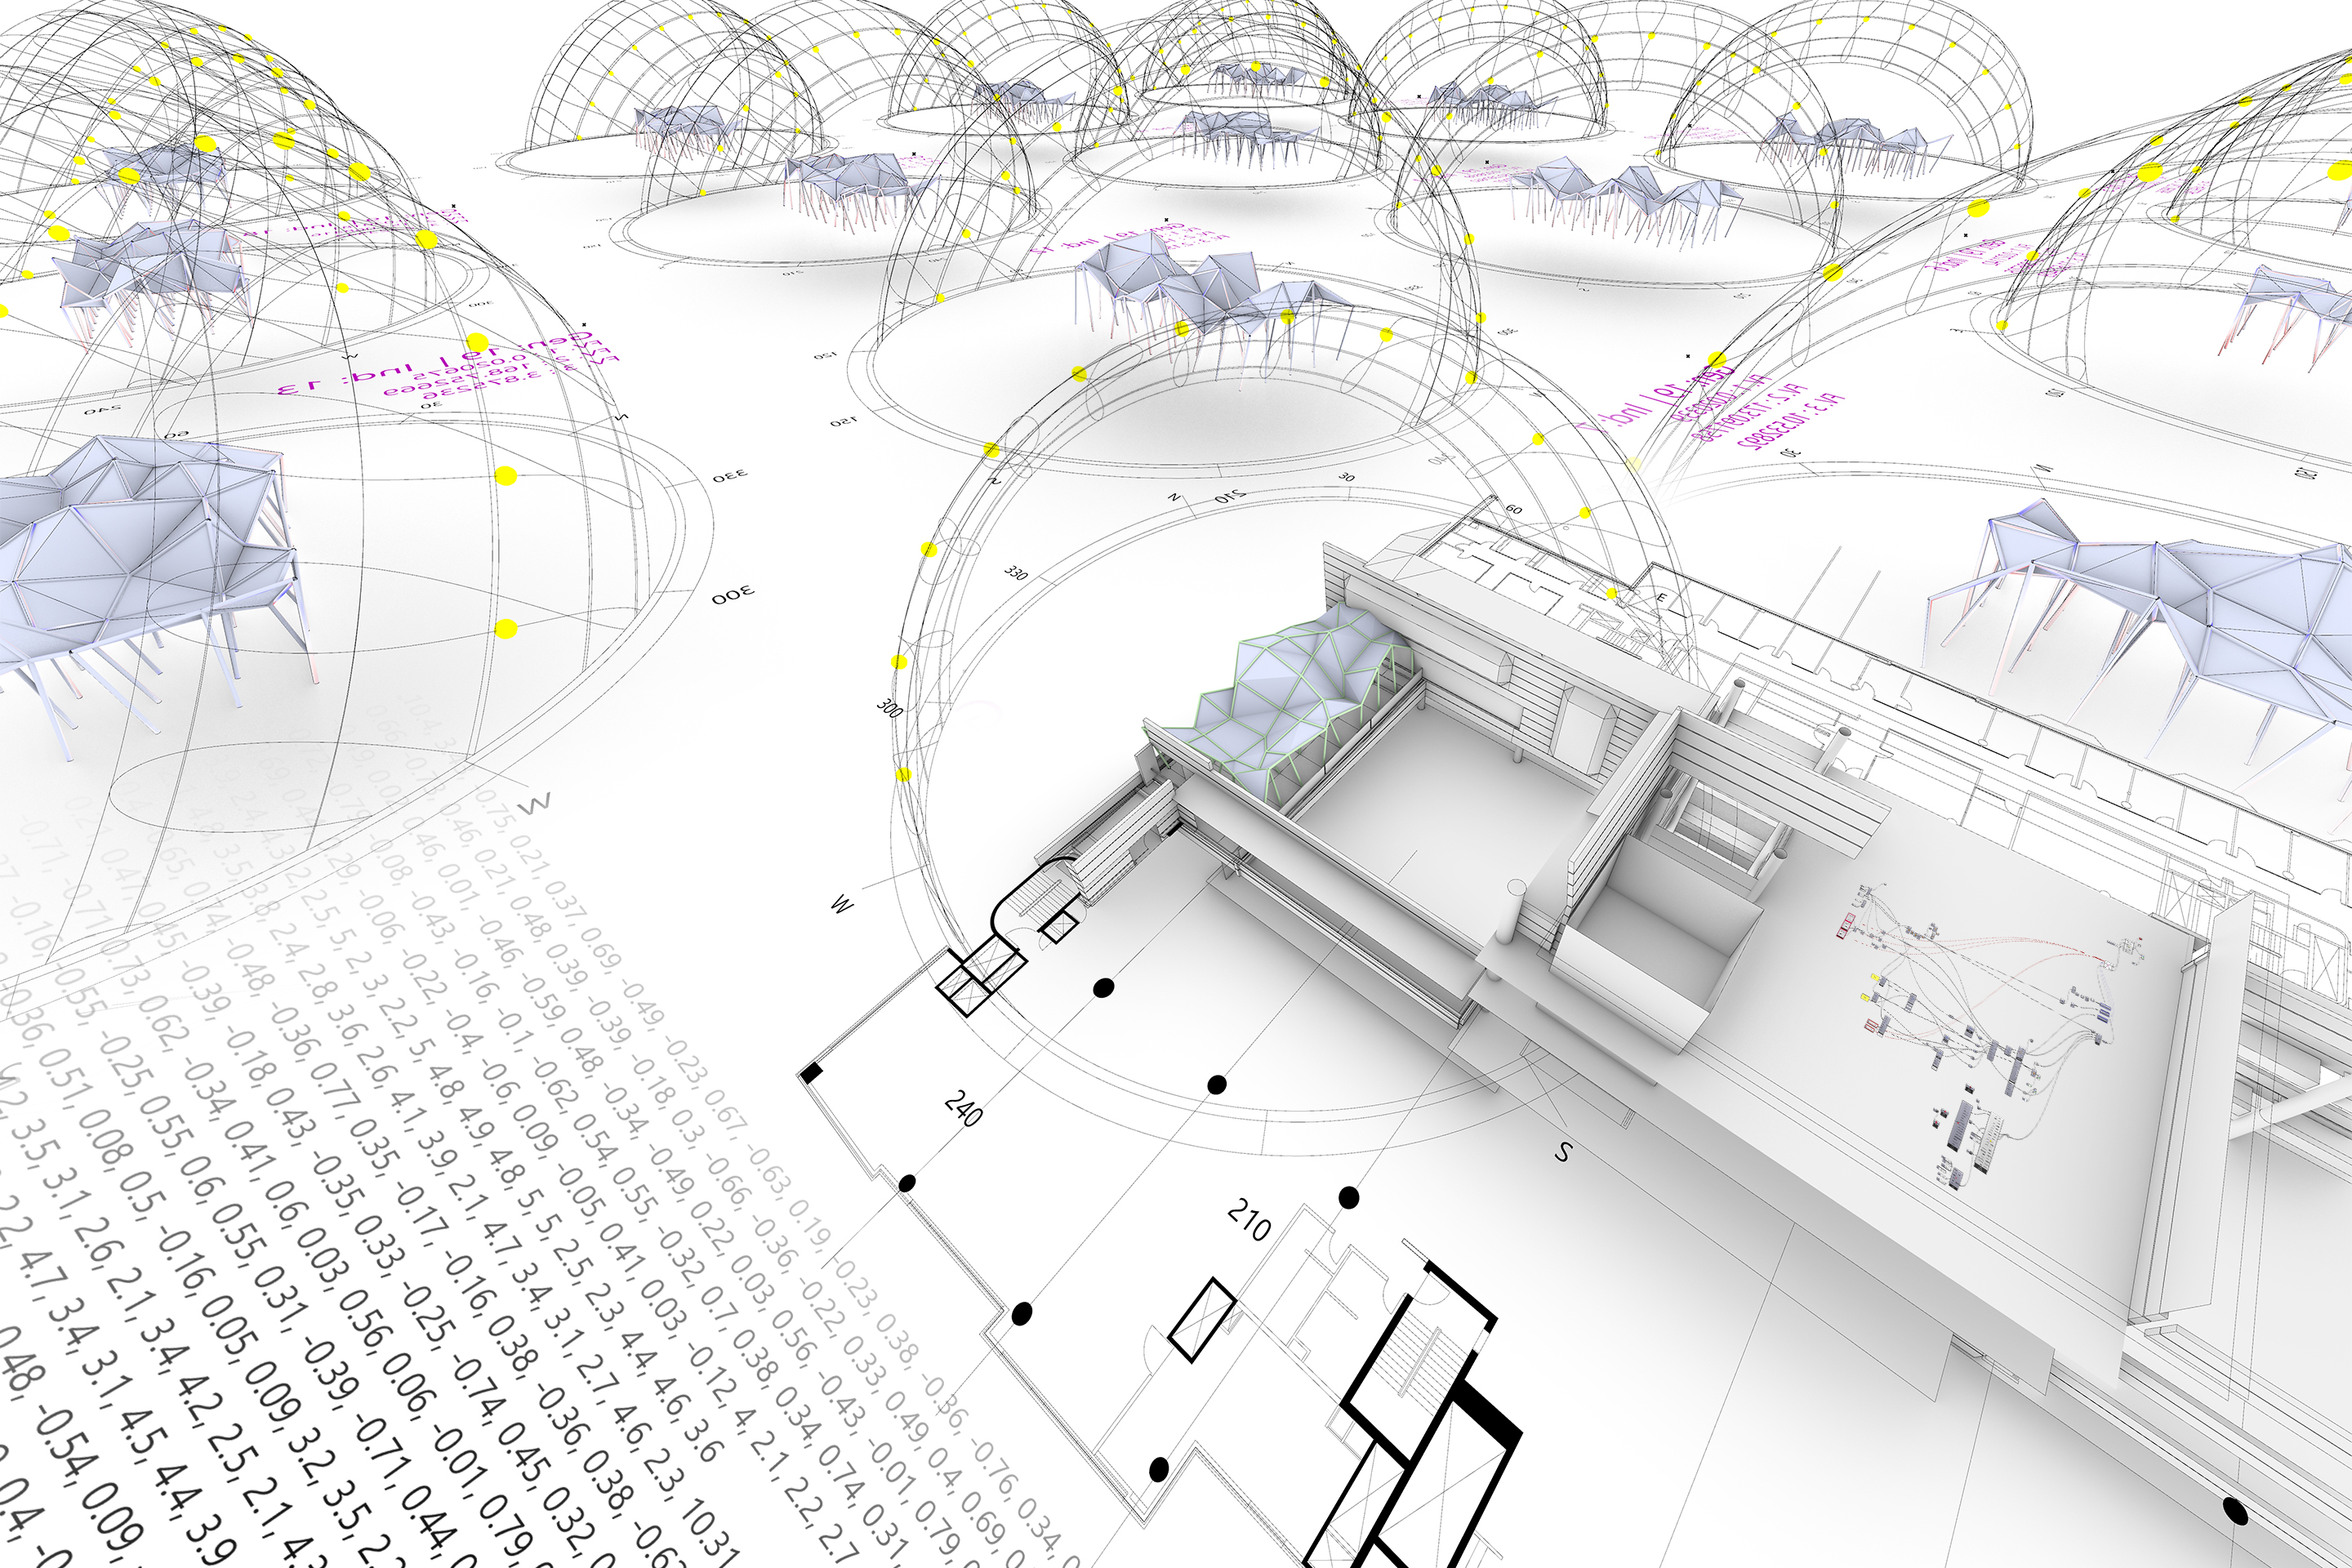 Advanced Digital Tools for Architectural Design and Structural Optimisation